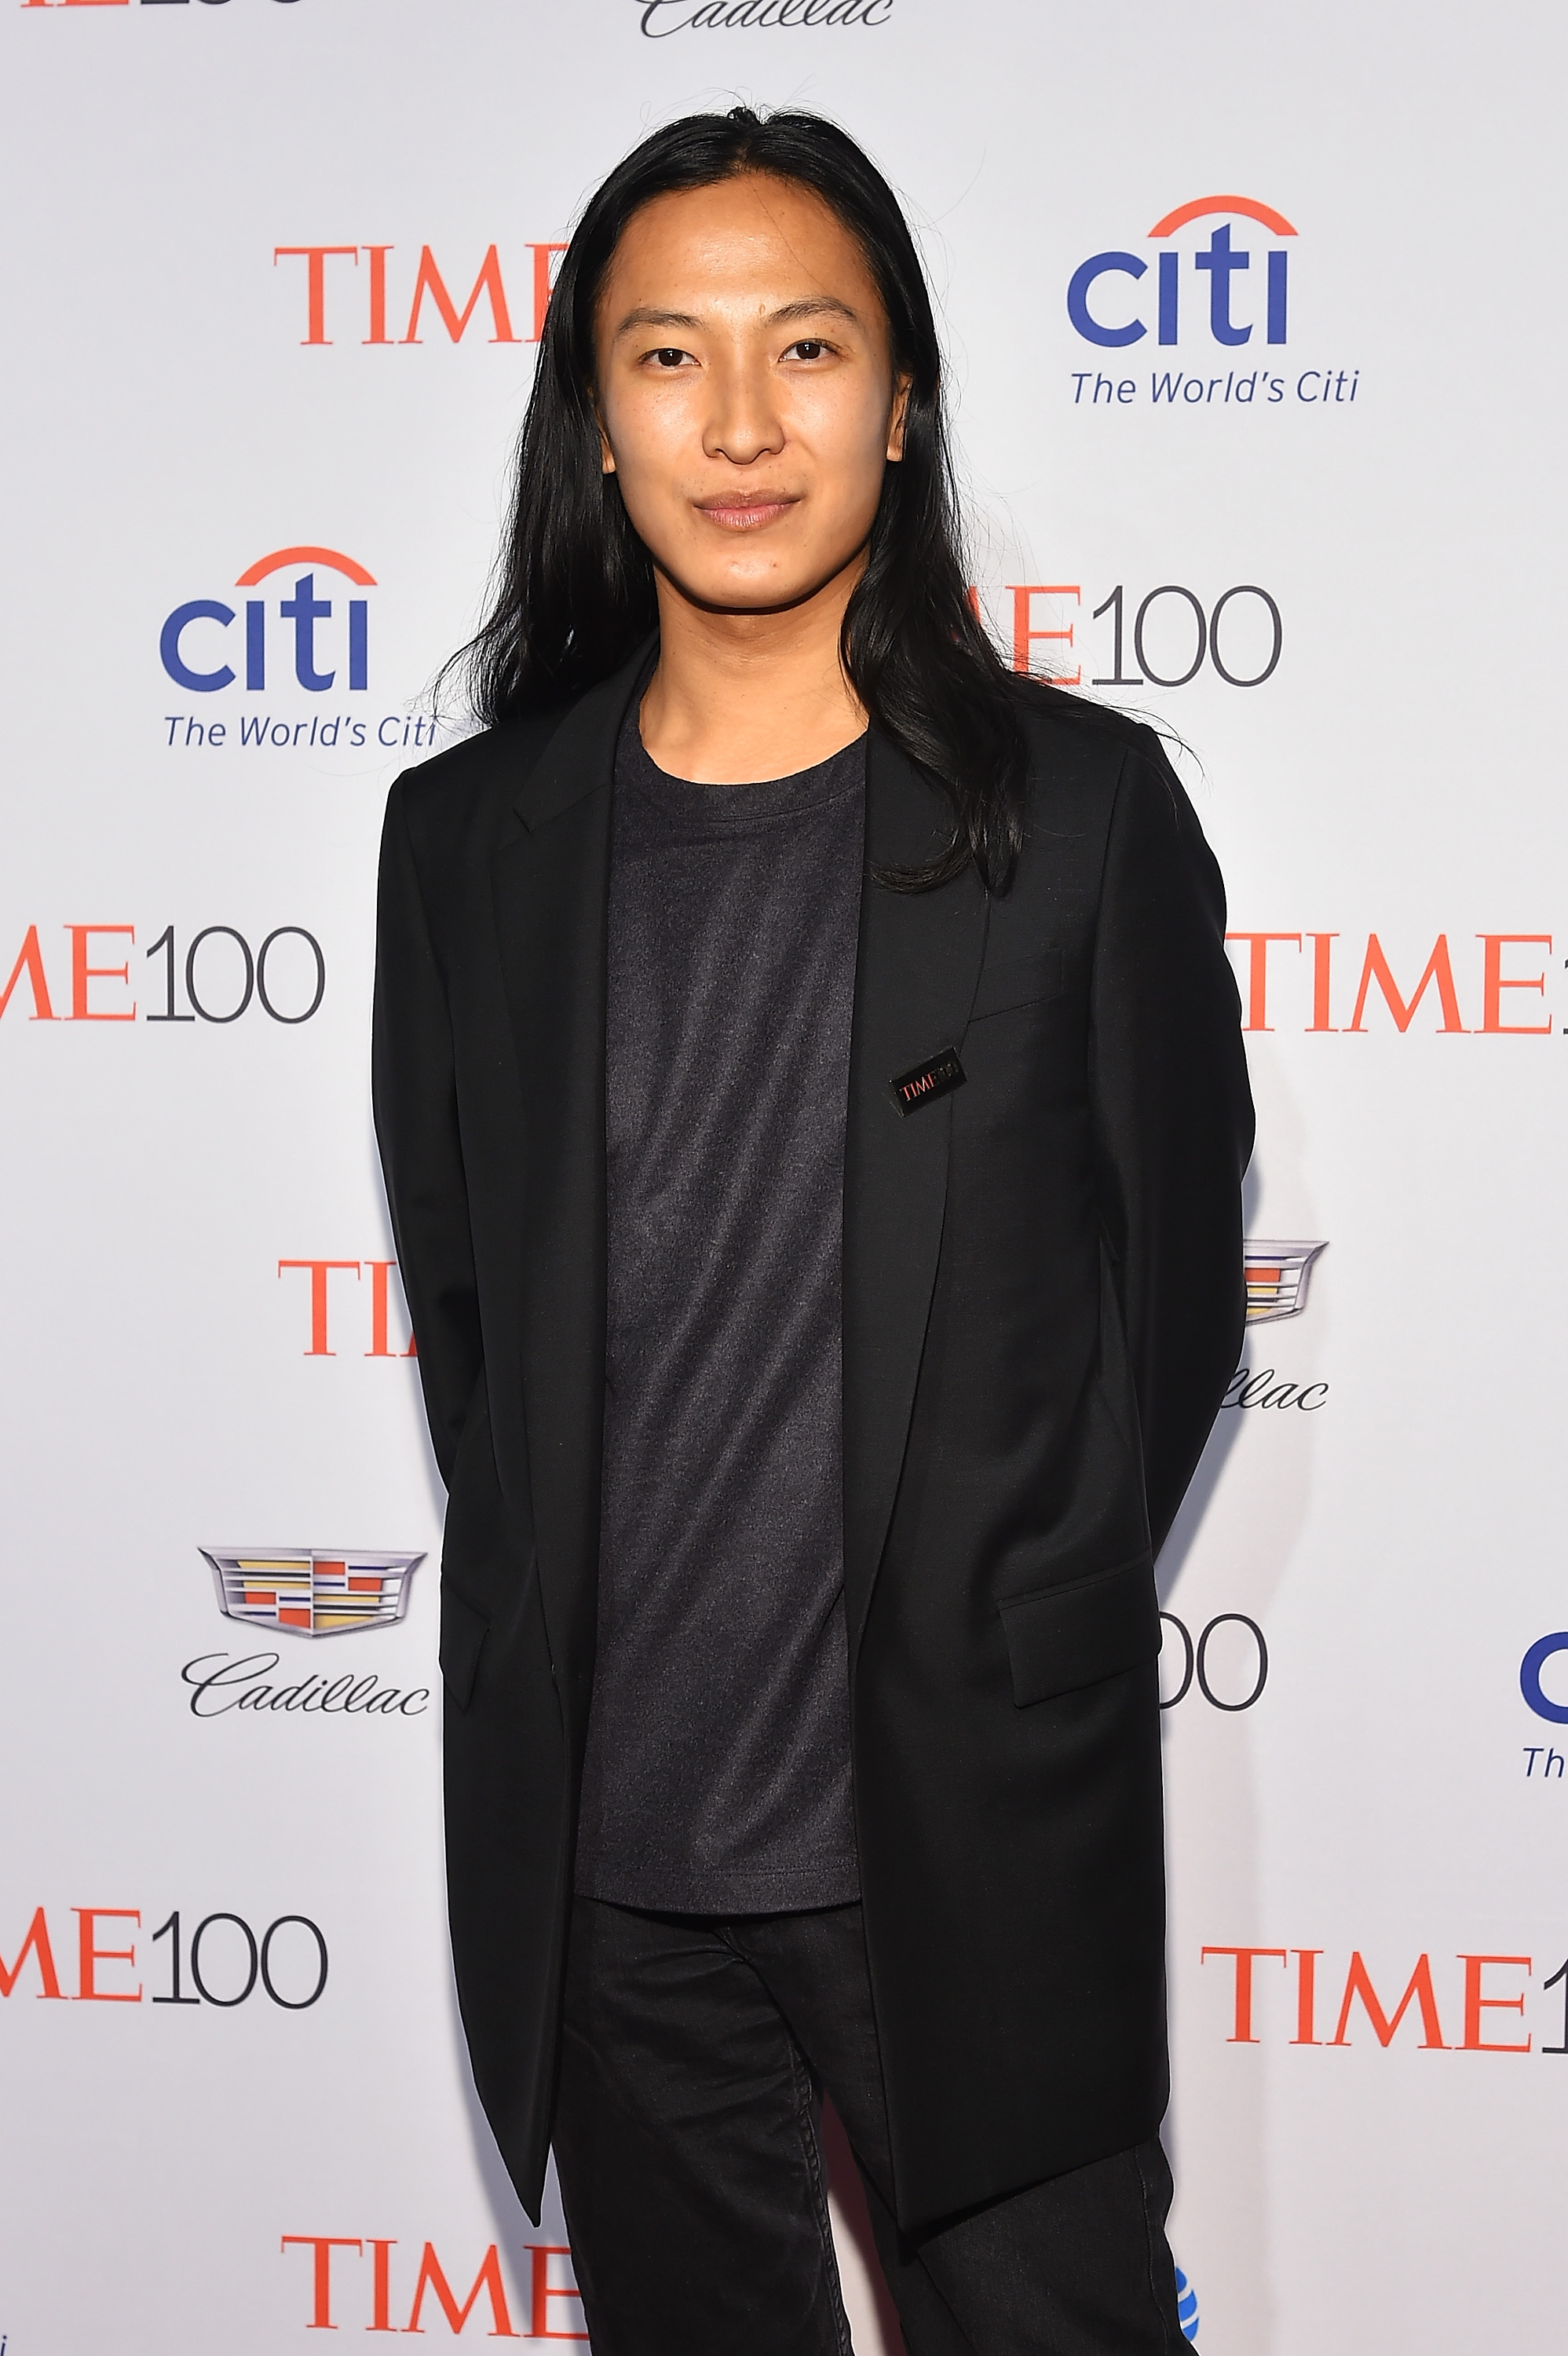 """Known for his model-off-duty designs, Alexander Wang's collections consistently top must-have lists for their edgy and directional approach to everyday accessories and wear. Since the launch in , Wang has solidified his eponymous line in being the go-to for """"it ."""